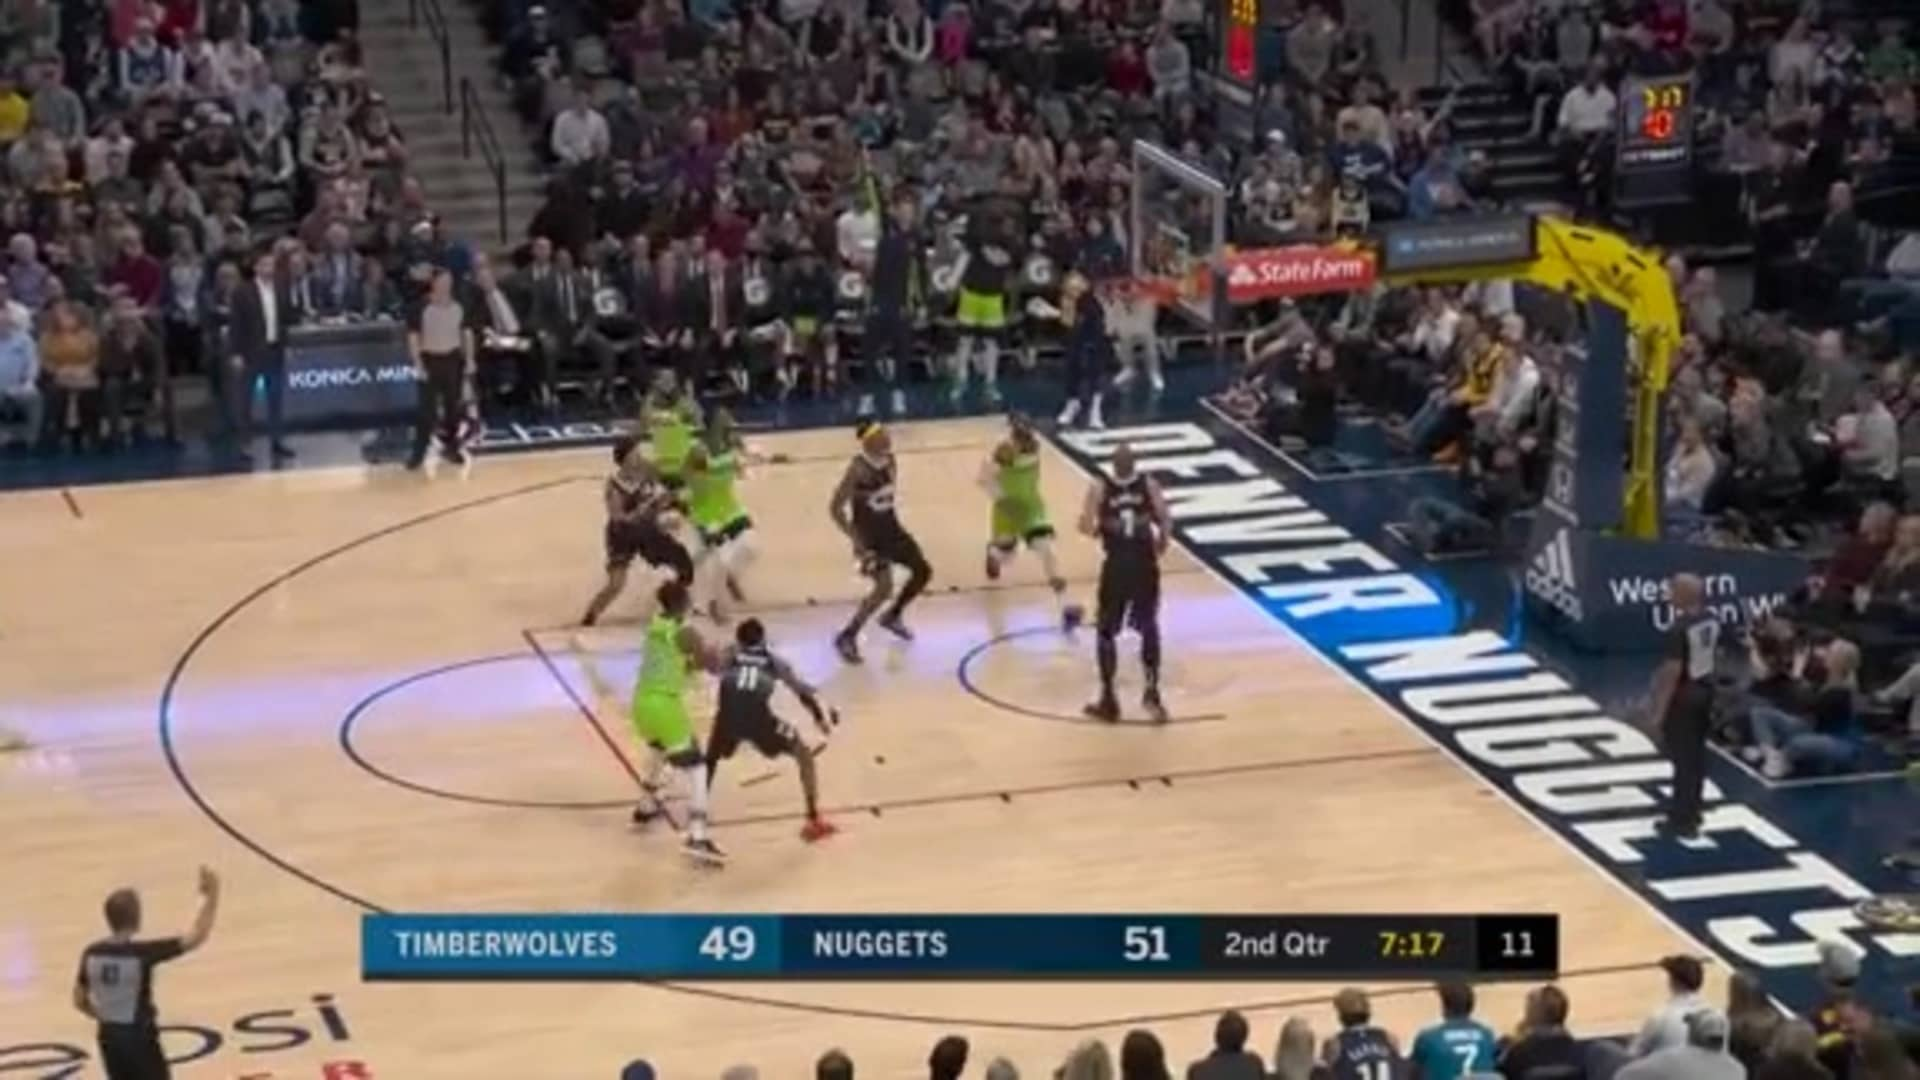 Highlights | Timberwolves 116, Nuggets 128 (2.23.20)